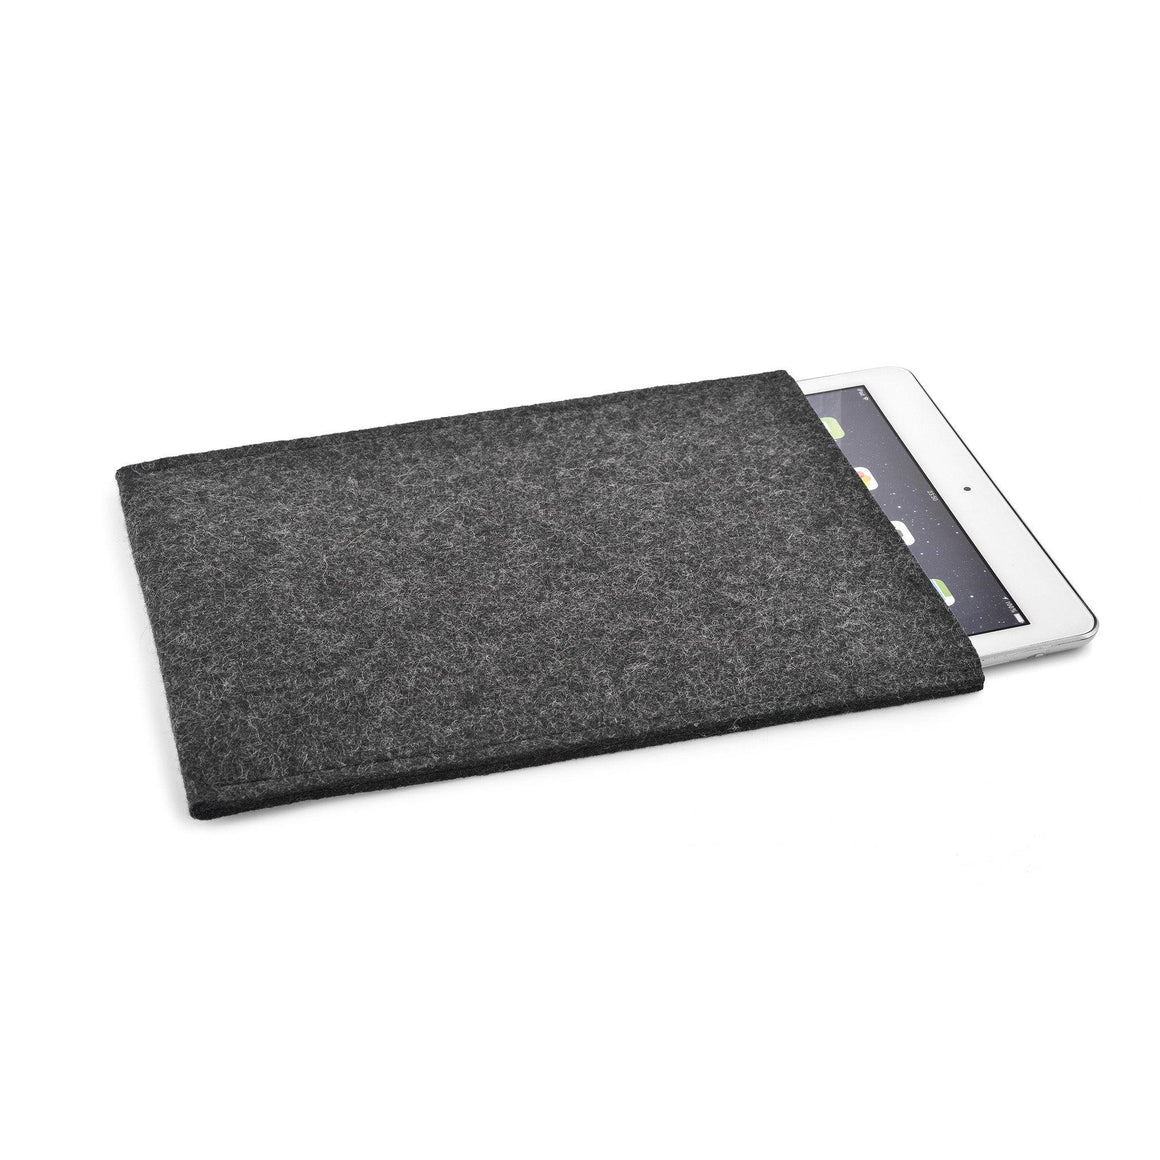 iPad Pro Wool Felt Cover Charcoal Portrait 9.7 - Wrappers UK